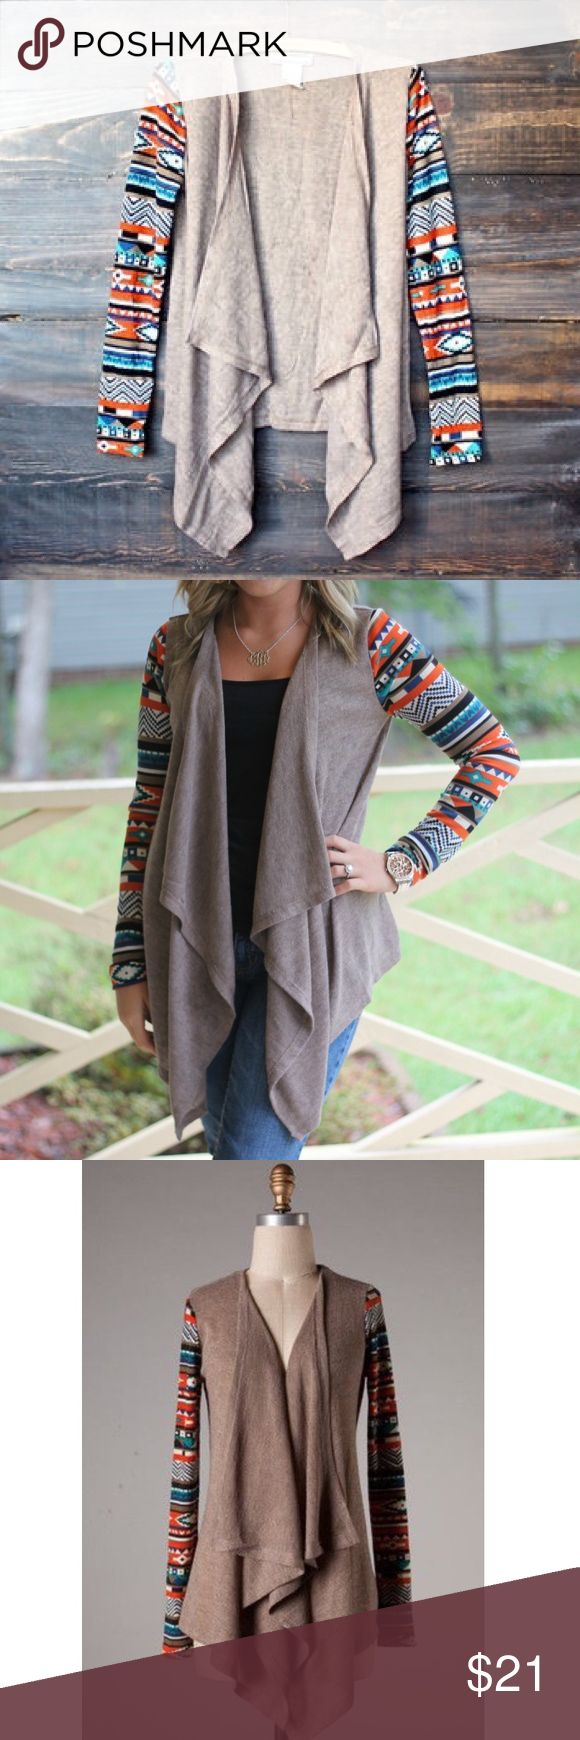 Flying Tomato Mocha Aztec Cardigan Sz Small Flying Tomato Mocha Aztec Cardigan. This is in like new condition!! Perfectly soft and sooo comfy.  (709) Flying Tomato Sweaters Cardigans